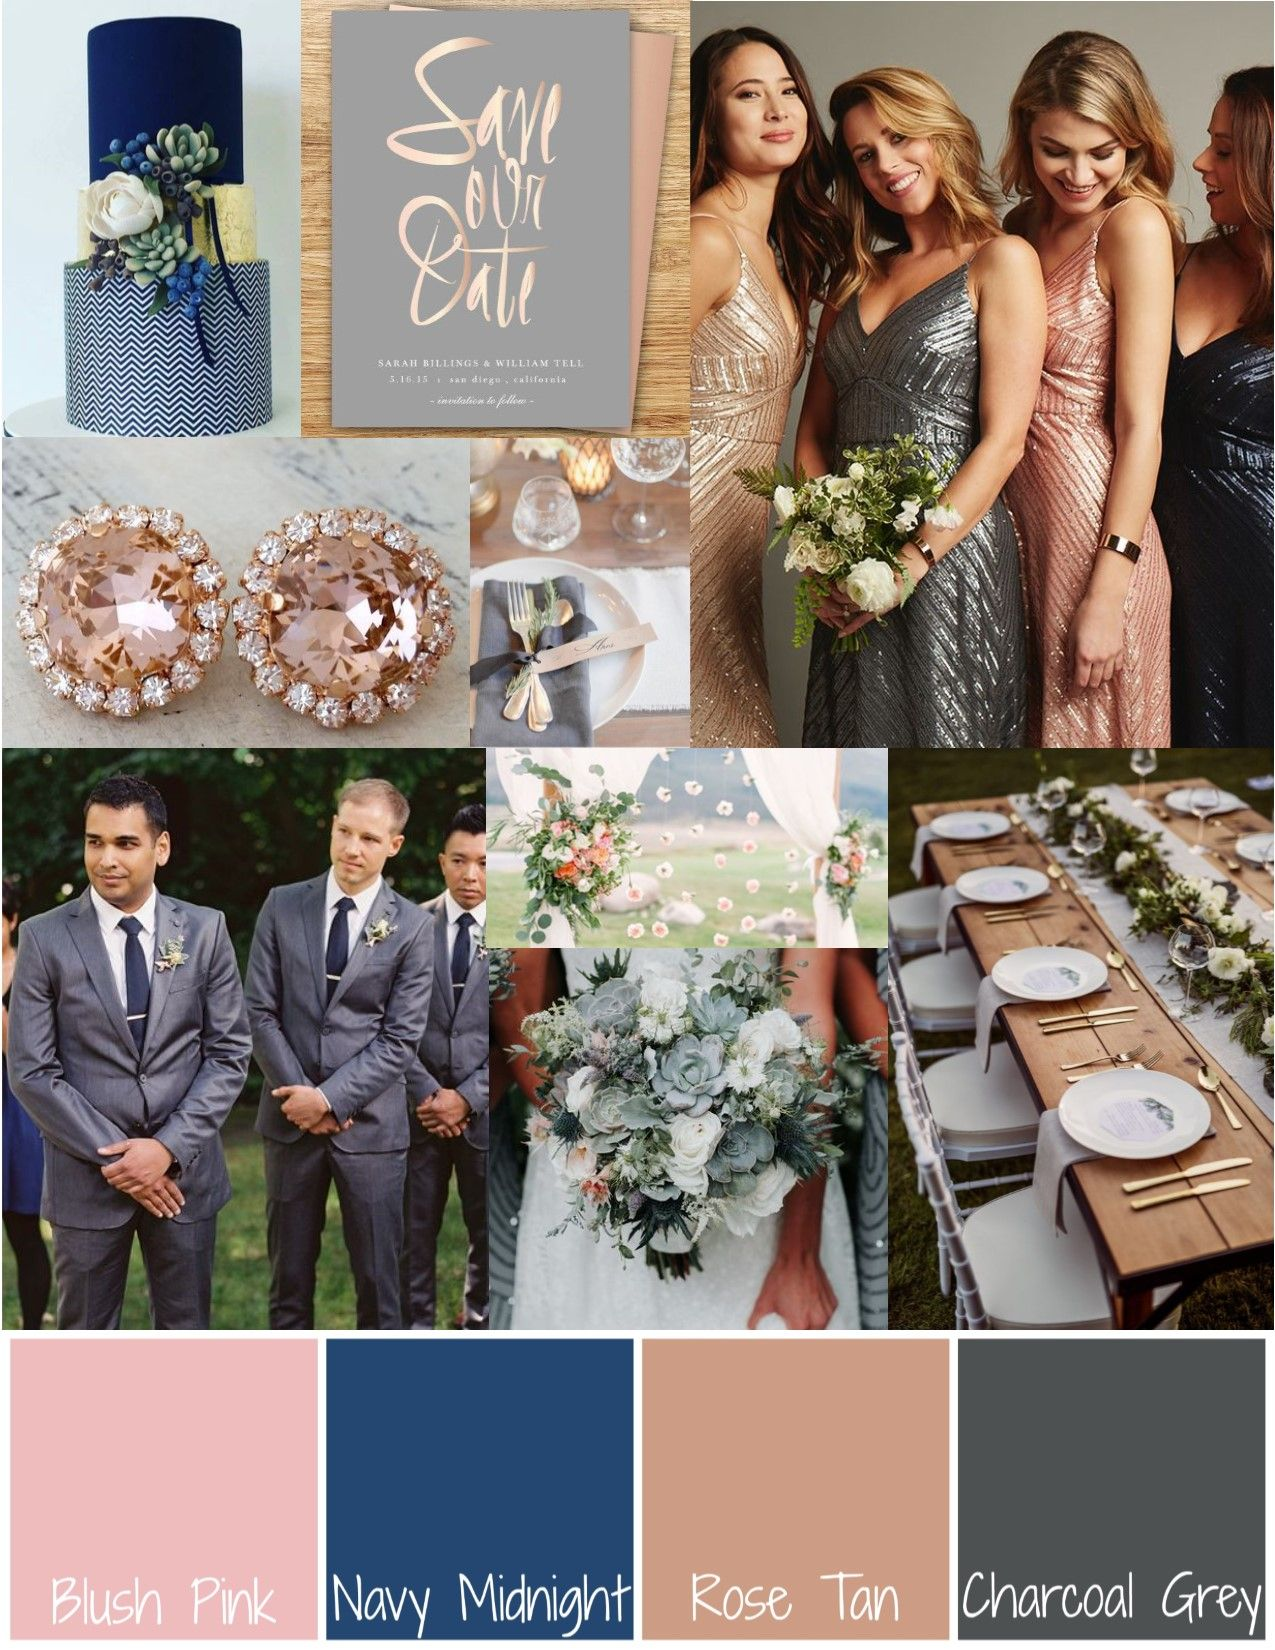 Blush Pink Navy Blue Rose Gold Charcoal Grey Midnight Summer S Dream A Summer S Eve Col Grey Wedding Theme Summer Wedding Colors Wedding Rose Gold Theme